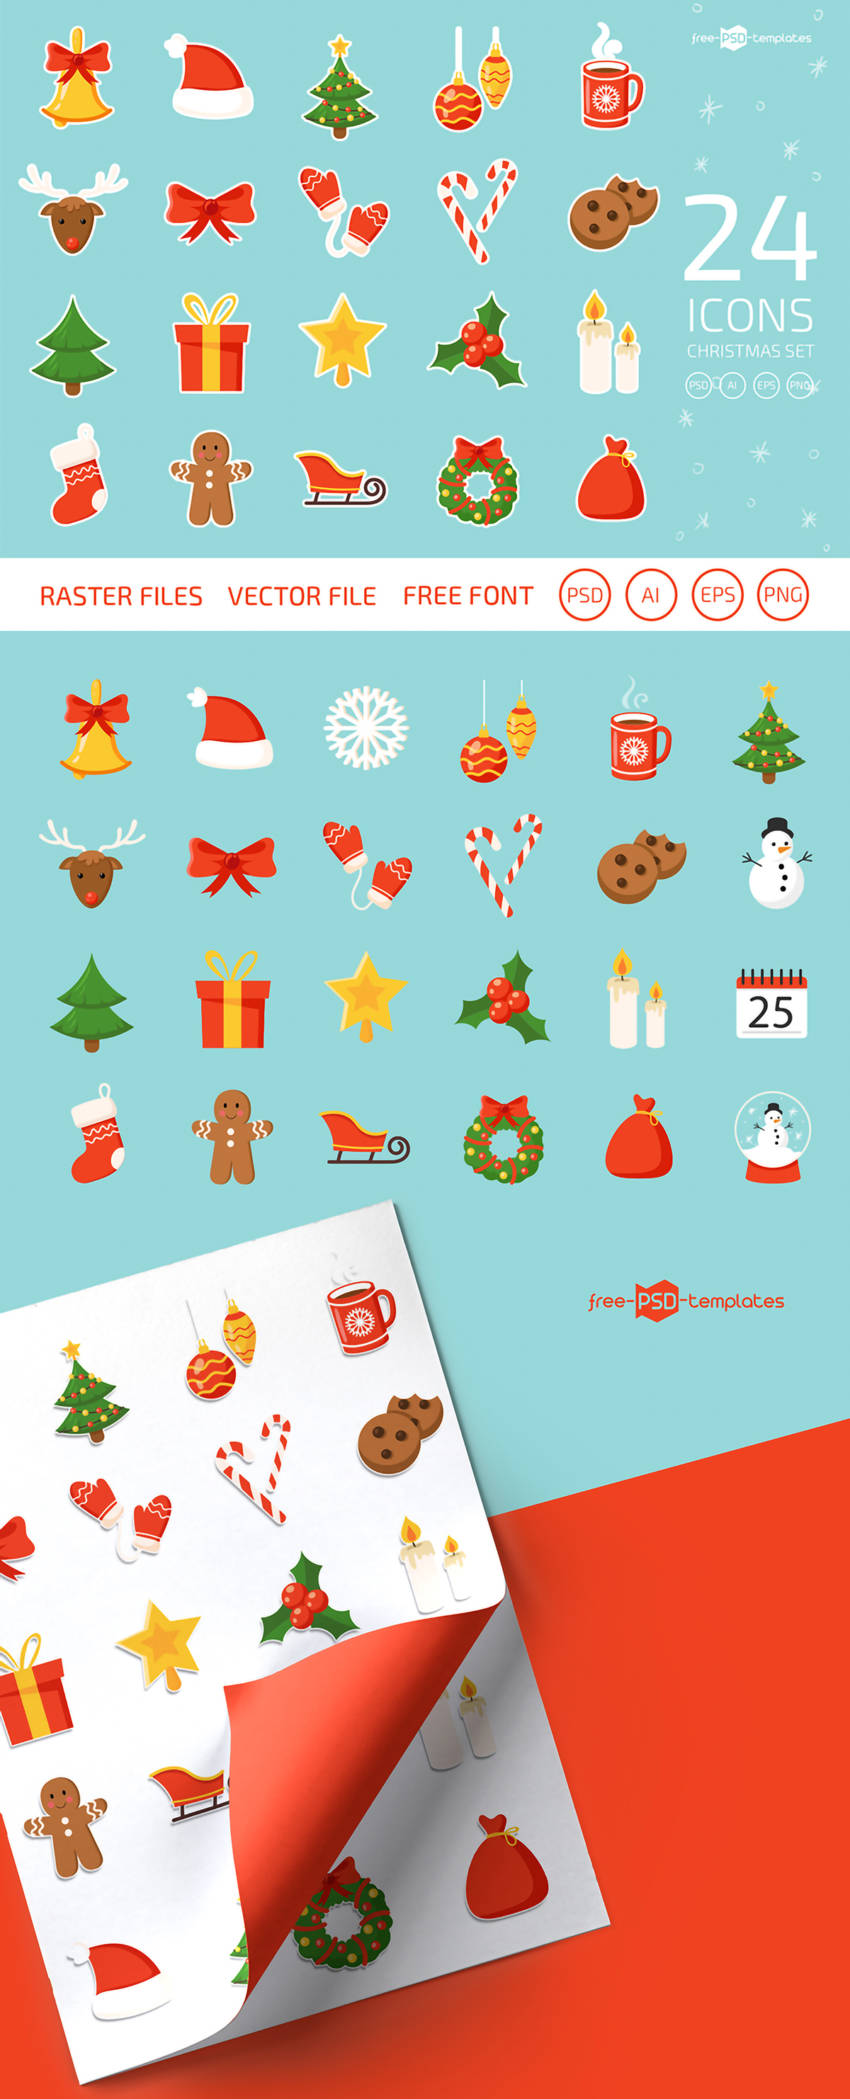 Free Christmas Icons Vector Set (.Psd + .Ai + .Eps + .Png) скачать бесплатно